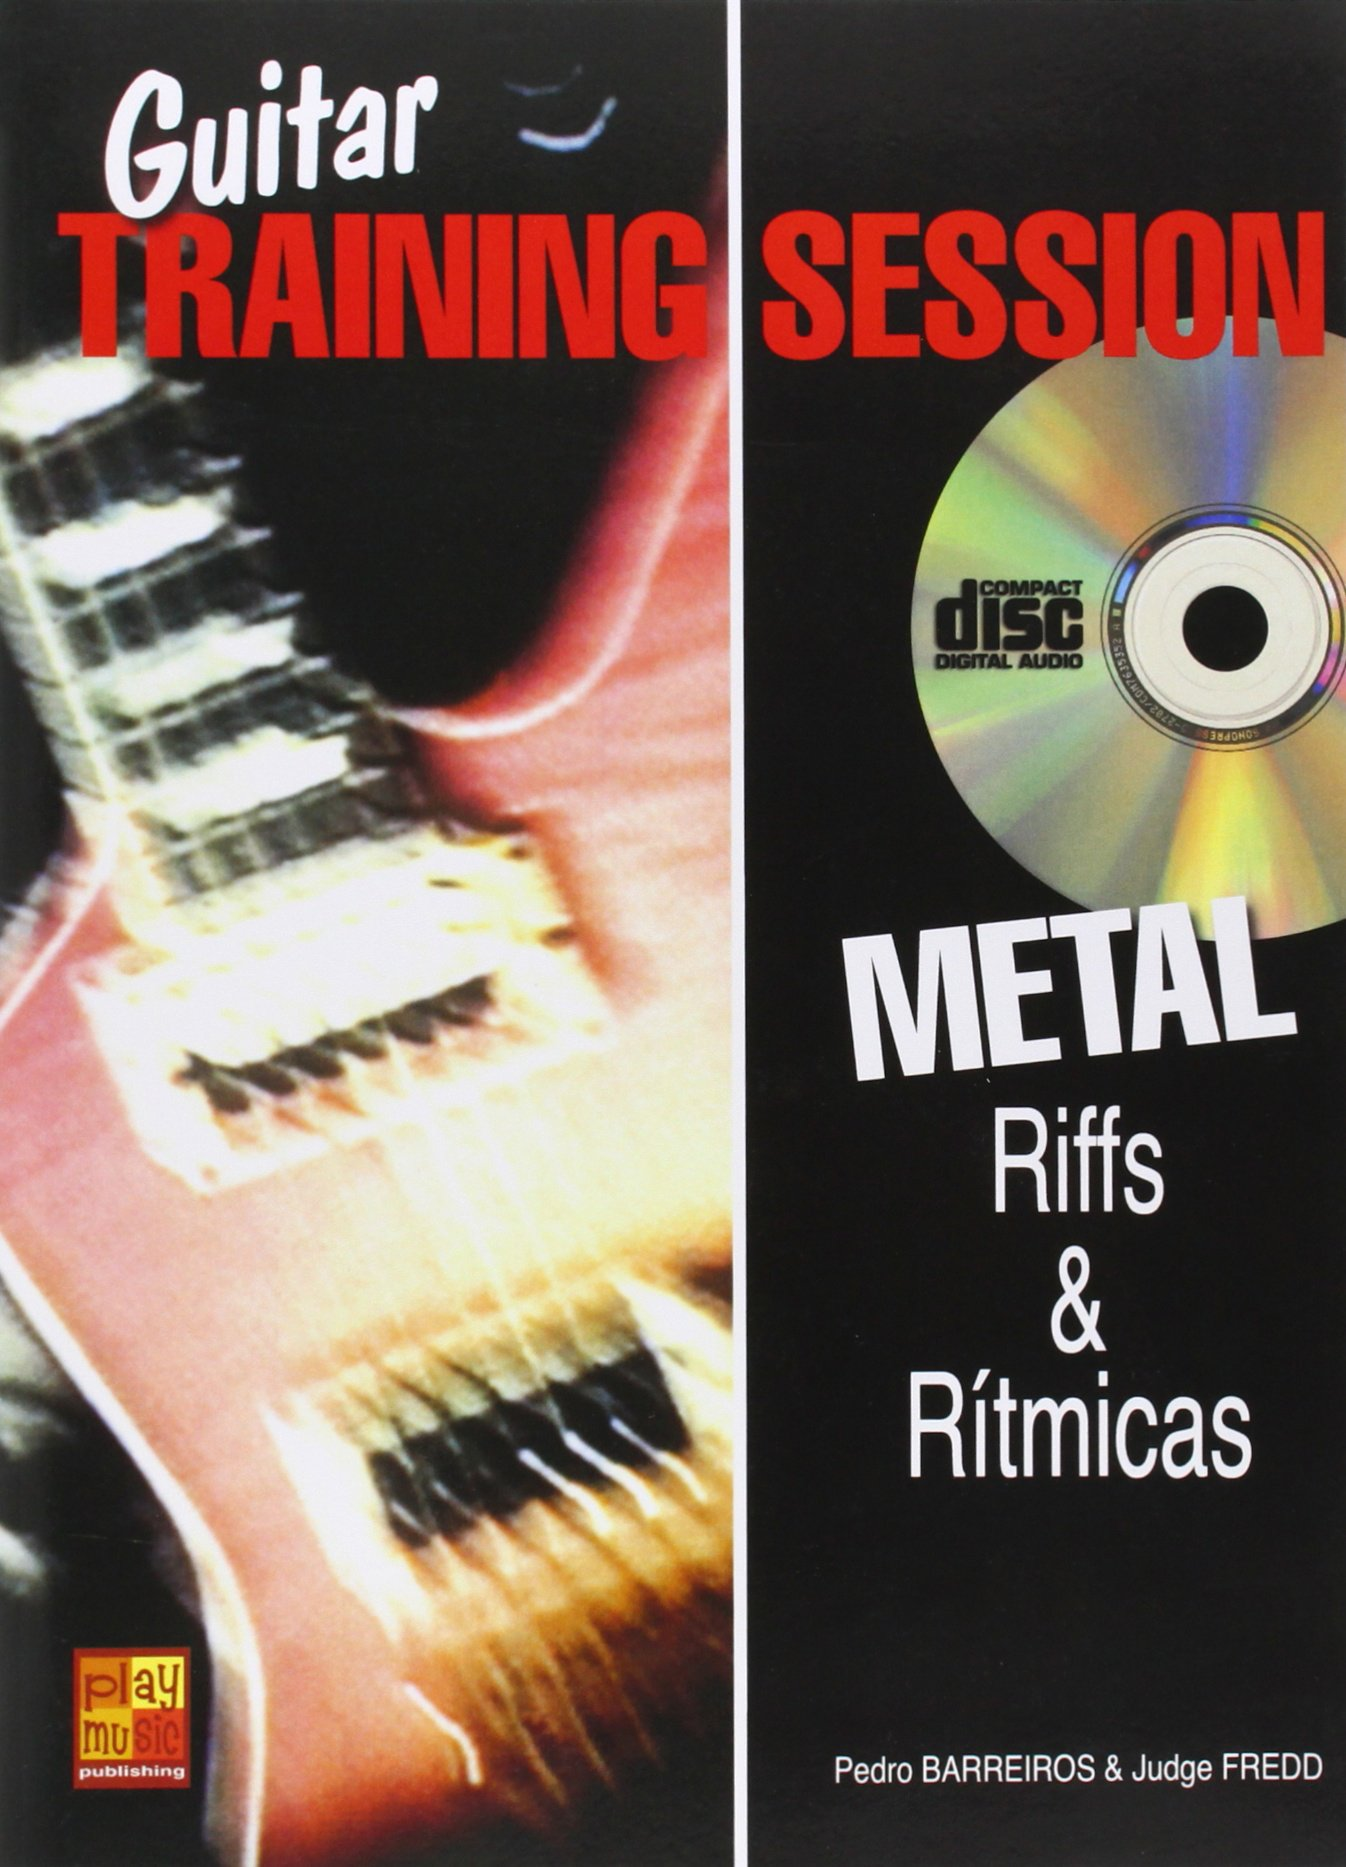 Guitar Training Session: Riff & Ritmicas Hard-Rock Play Music ...